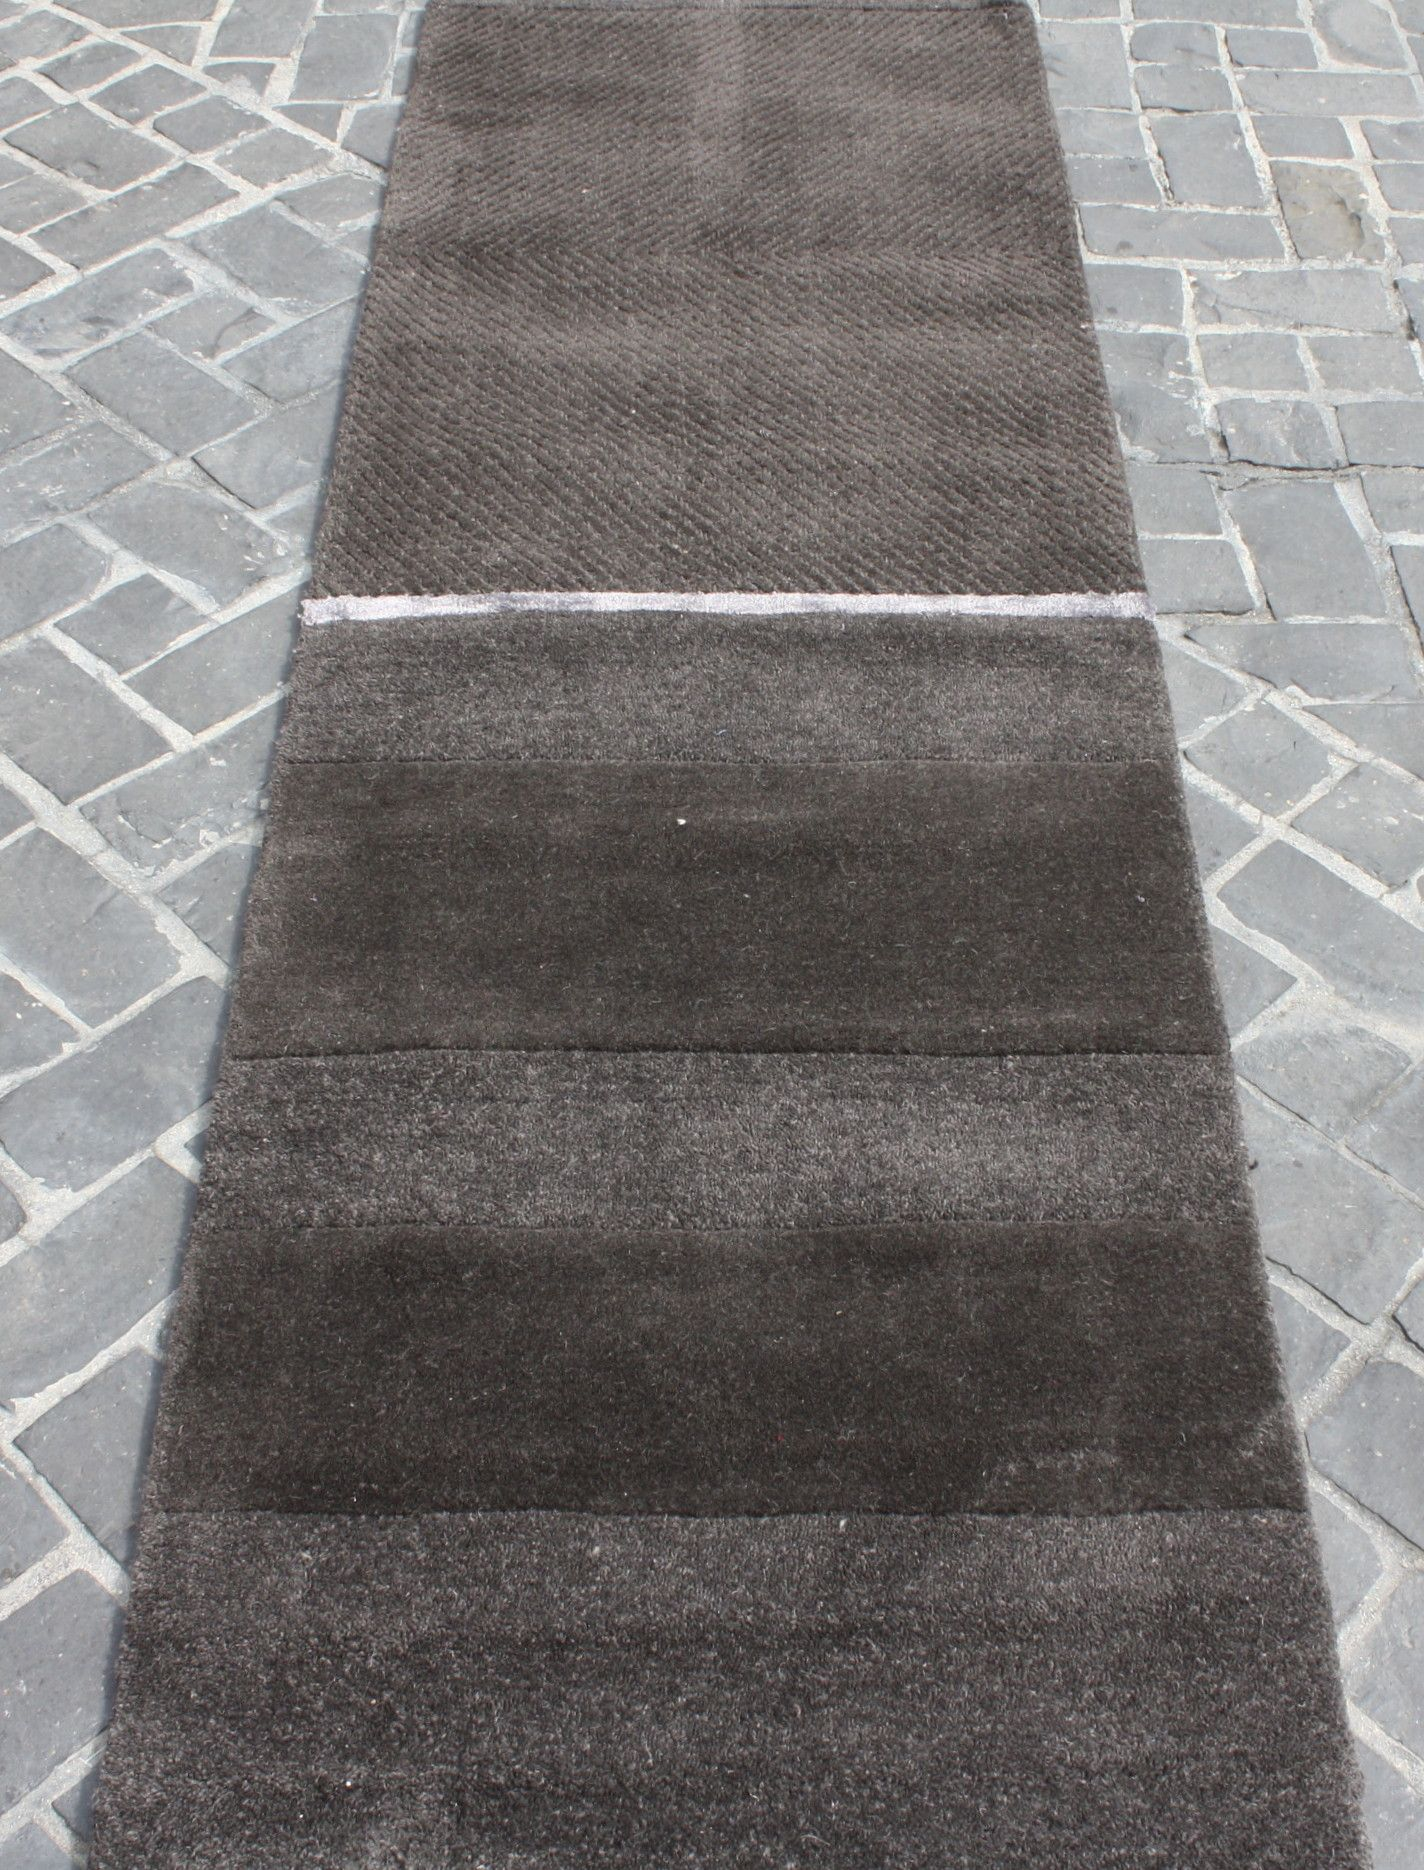 Nourison Contemporary Calvin Klein Ck205 Val01 Onyx 2 X 8 Wool Runner Price 190 00 Discontinued Line Shop On Our Ebay Rugs Rug Warehouse Clearance Rugs